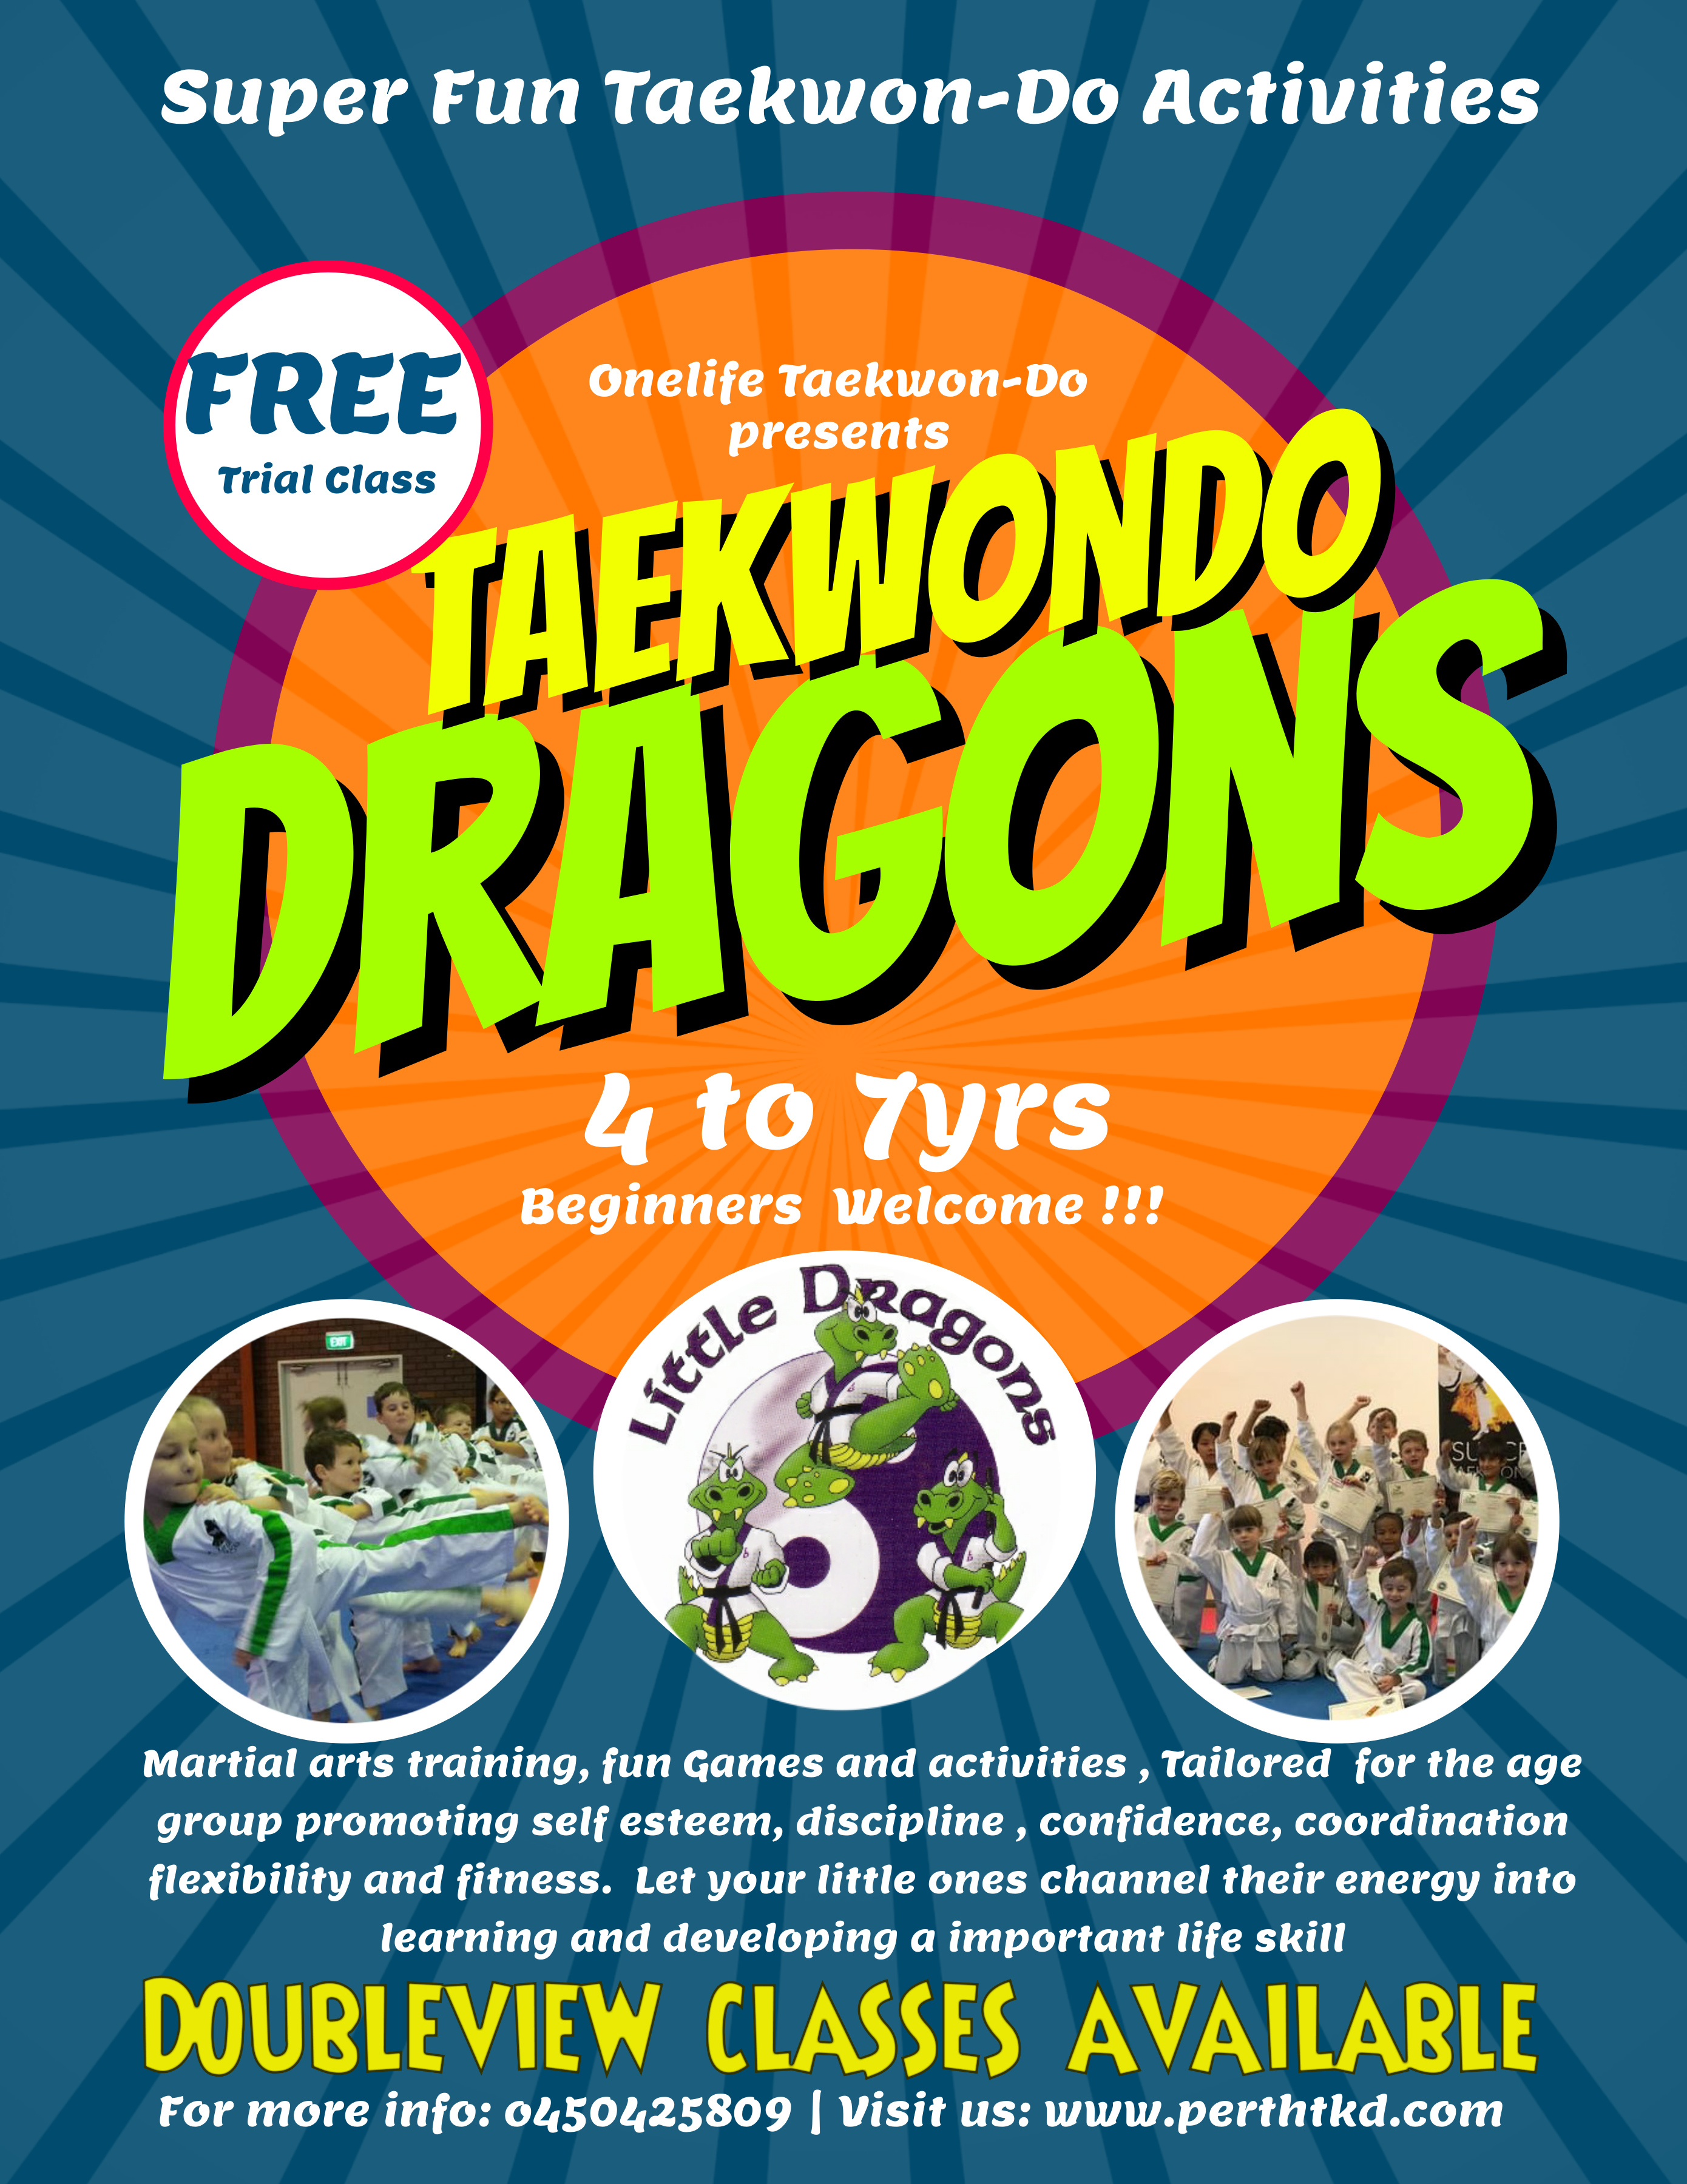 doubleview-dragons-flyer